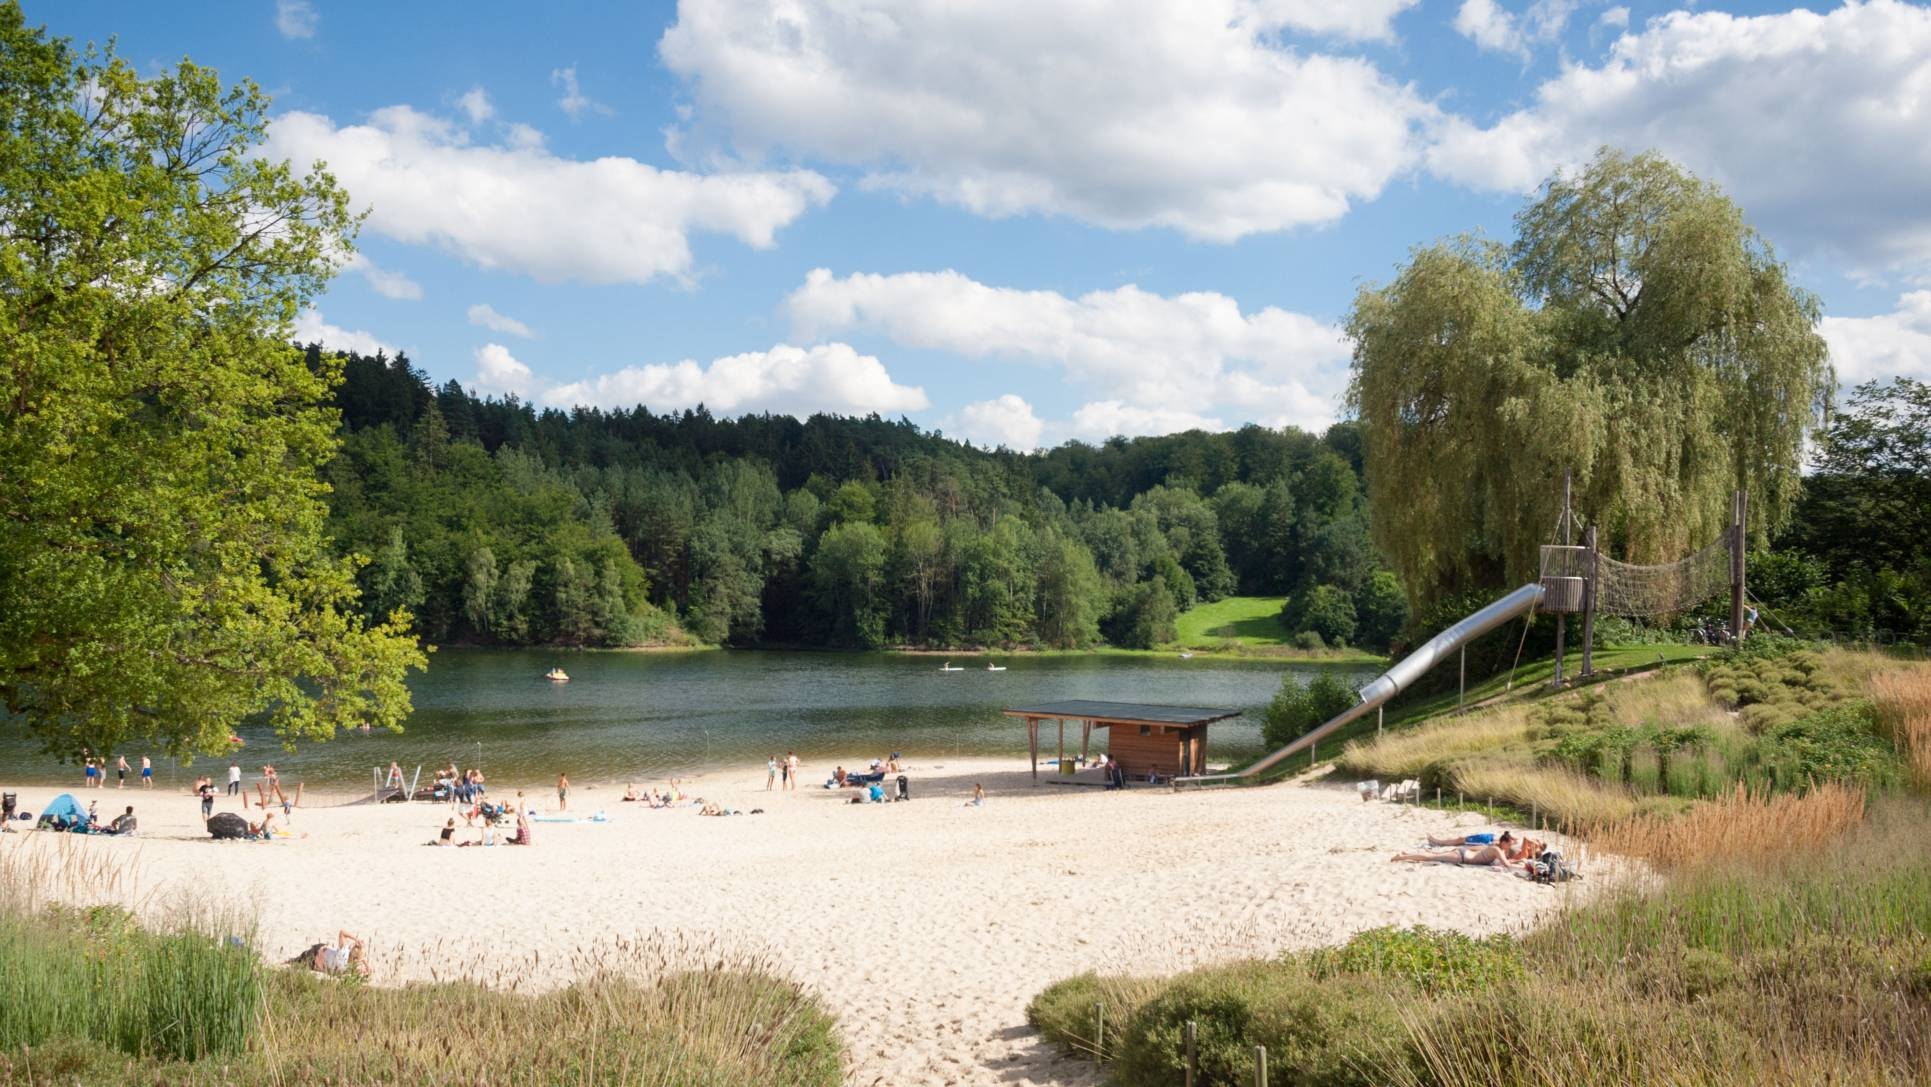 Strandbad Twistesee